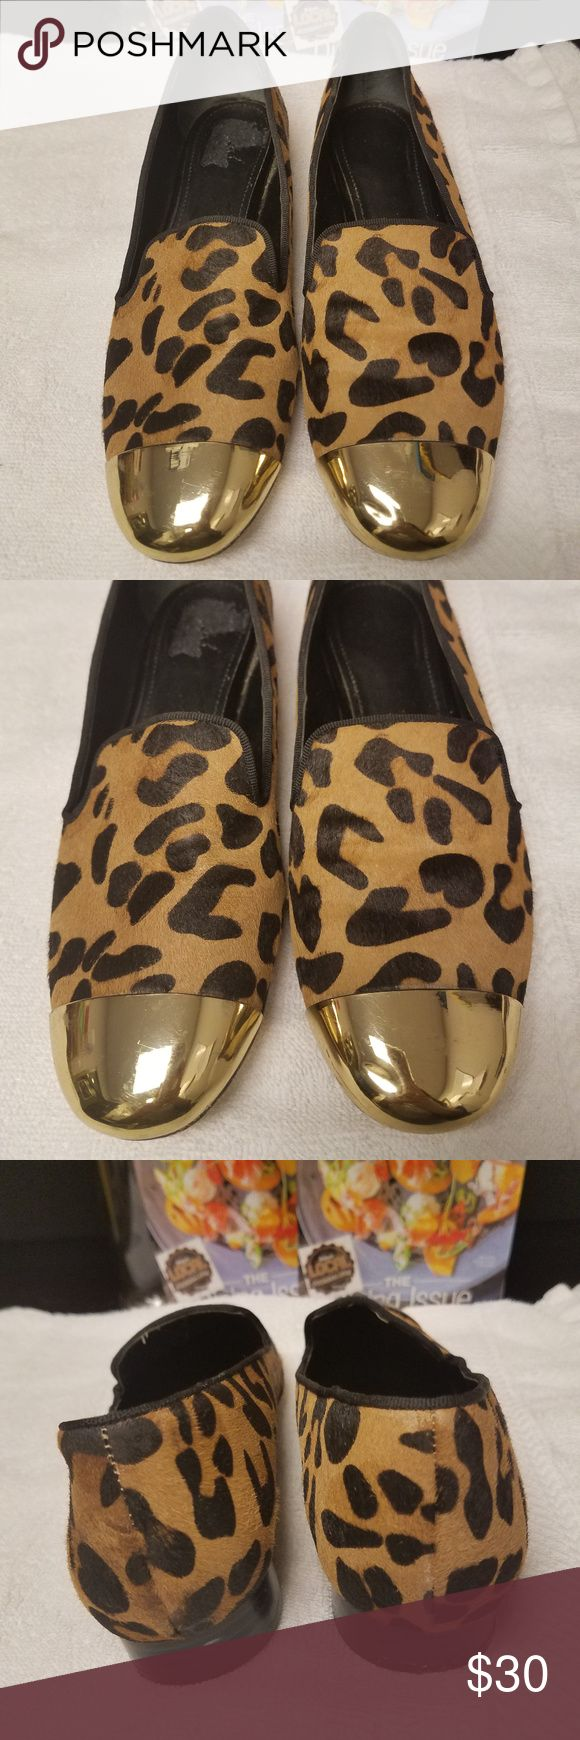 """SALE!! 14TH & UNION Leopard Calf Hair Flats 7.5M 14TH & UNION Leopard Real Fur Printed Calf Hair Gold Loafer Flats Women 7.5M Great Used Condition  Beautiful leopard ballet flats, loafers  Minimal hairline scratches on the gold accent   Measurements: Length: 9.5"""" in Width: 2.5"""" in  Thank you for looking!  S-S006 14th & Union Shoes Flats & Loafers"""